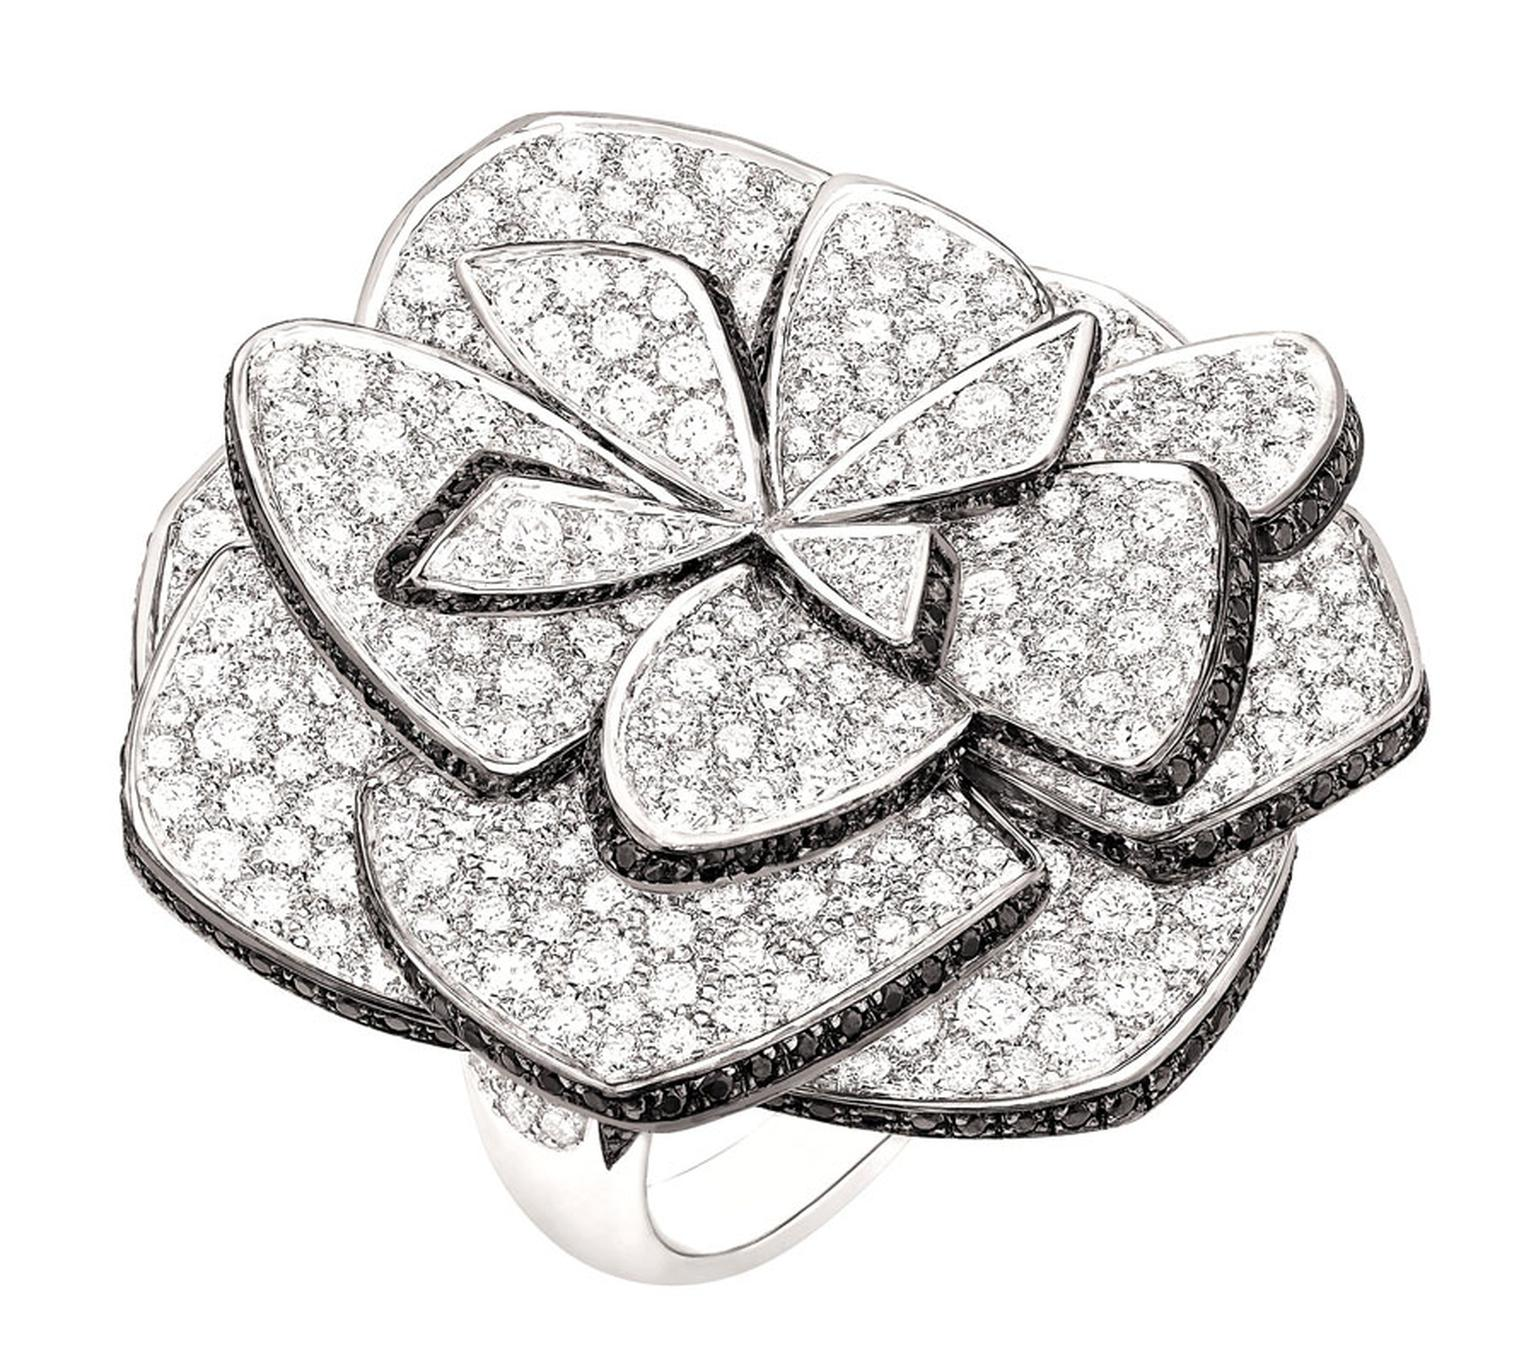 Chanel-Bague-Ruban-de-Camelia